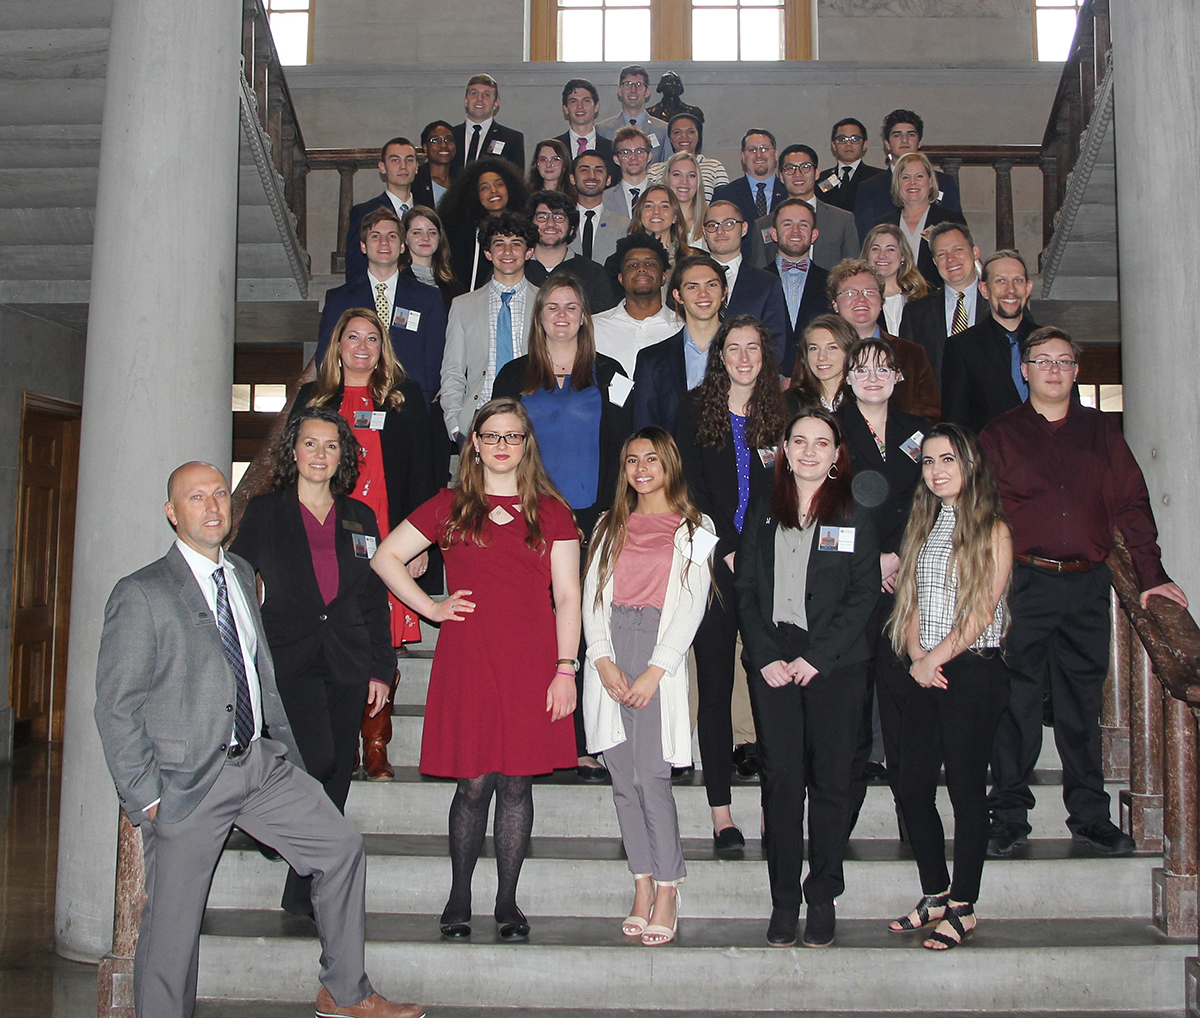 MTSU joined eight other universities from across Tennessee in bringing nearly 60 student researchers to present and meet legislators during Posters at the Capitol in Nashville, Tenn., Wednesday, Feb. 26. The effort was led by the Tennessee STEM Eduction Center. (Submitted photo)